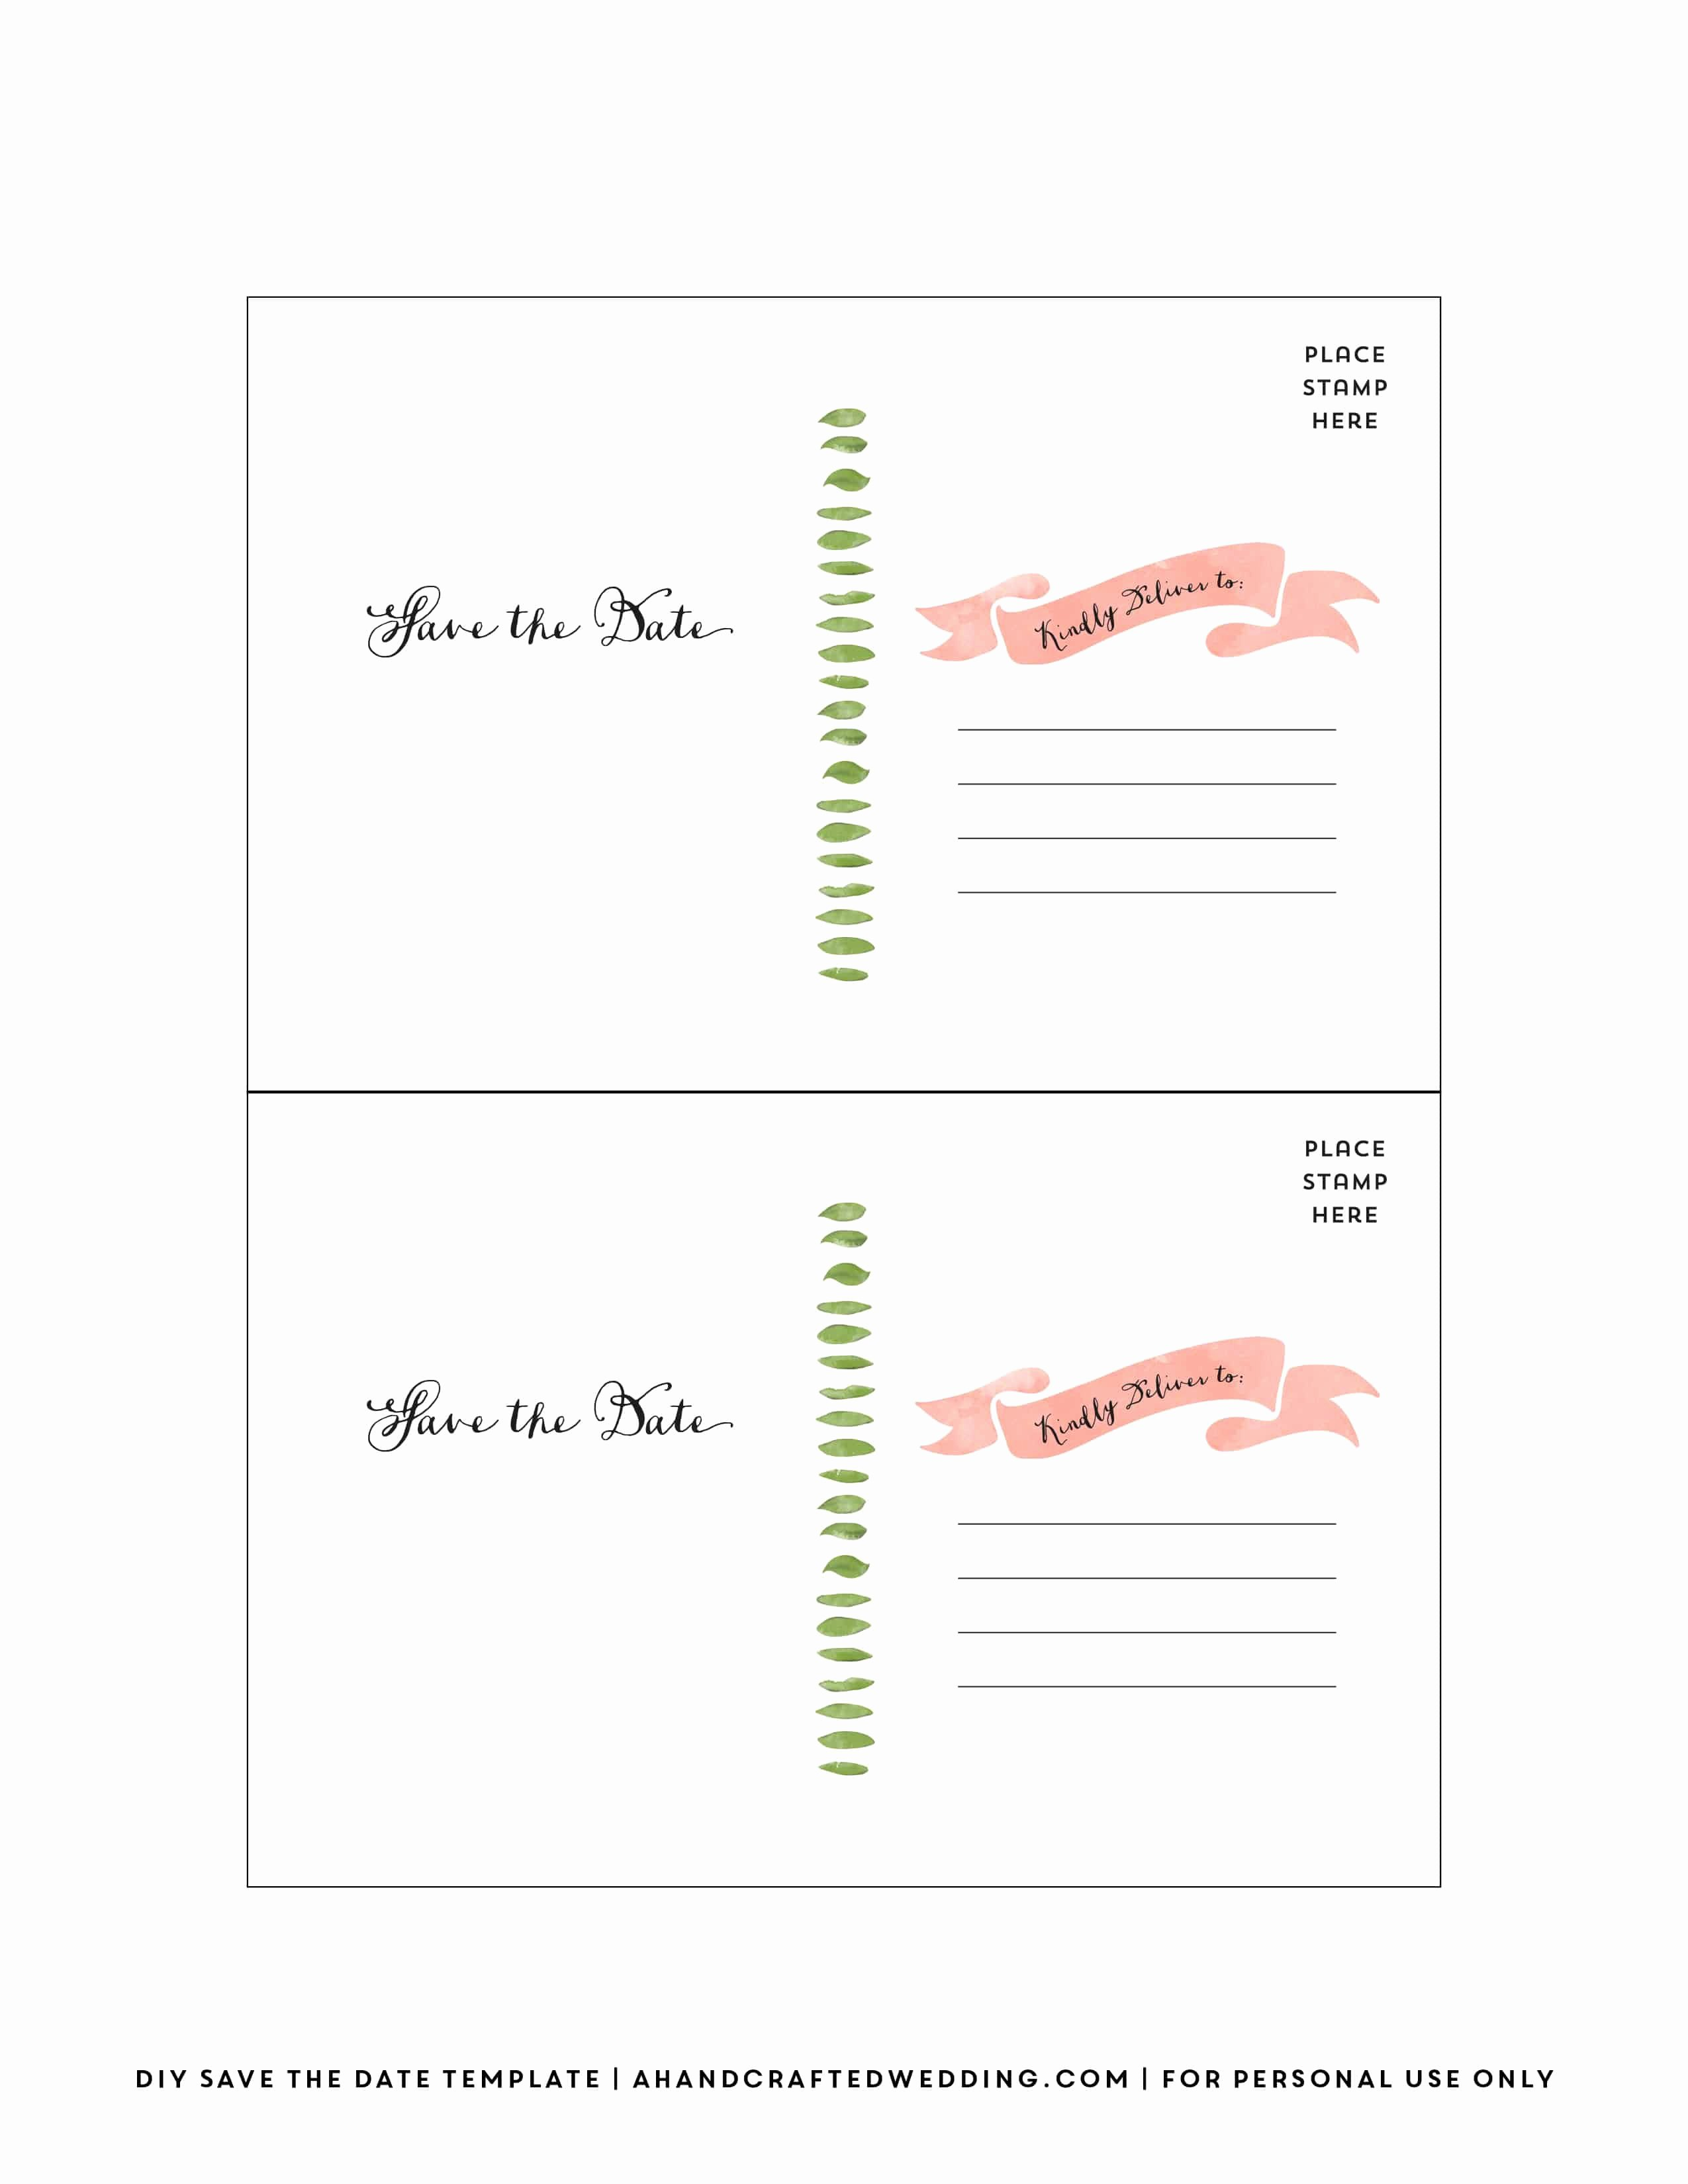 Save the Date Postcard Template Inspirational Diy Save the Date Postcard Free Printable